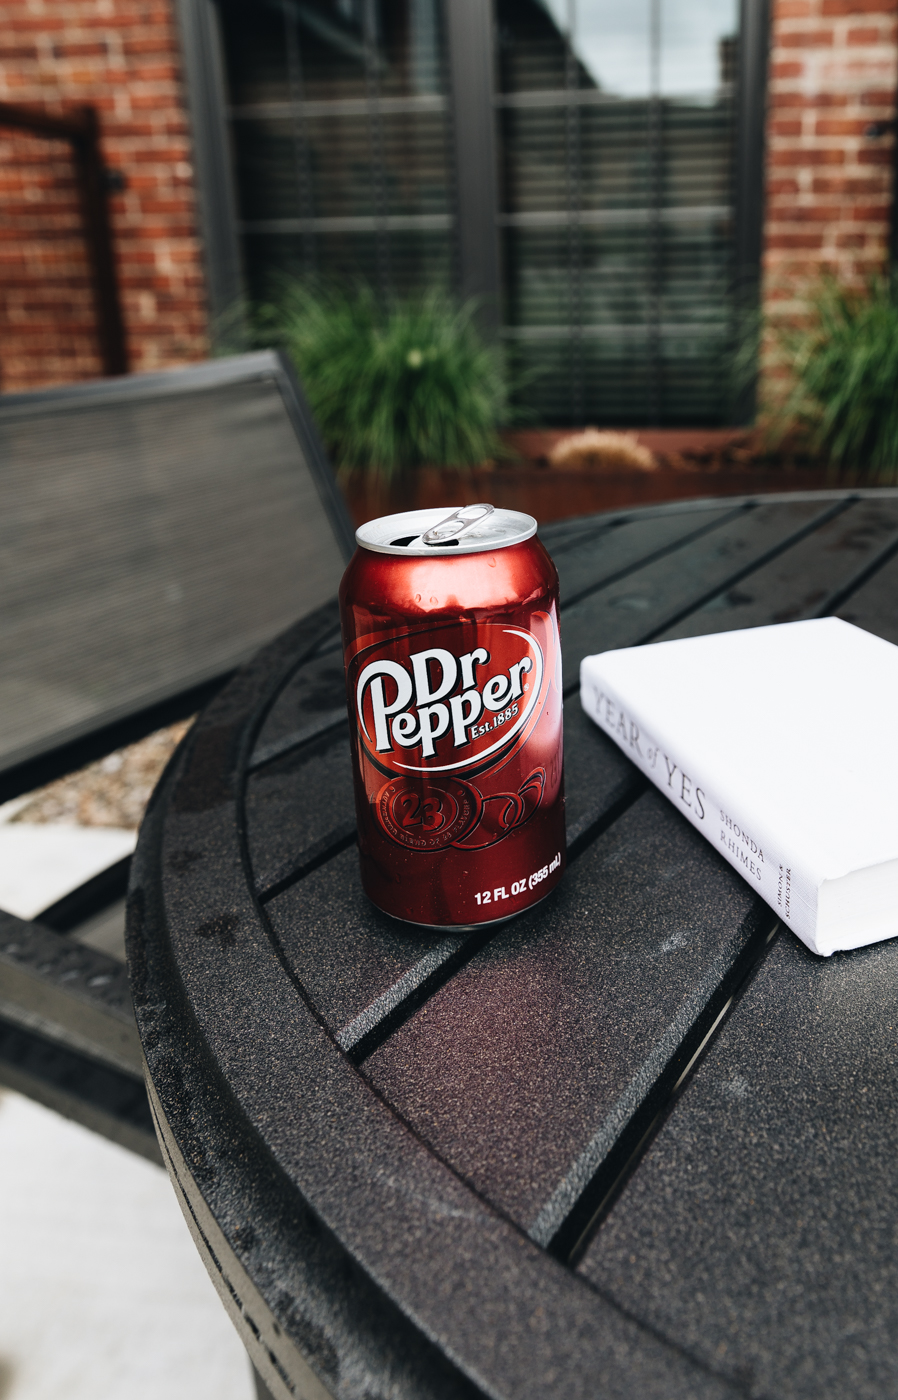 dr pepper, germantown mill lofts, louisville kentucky, the kentucky gent, top lifestyle blog